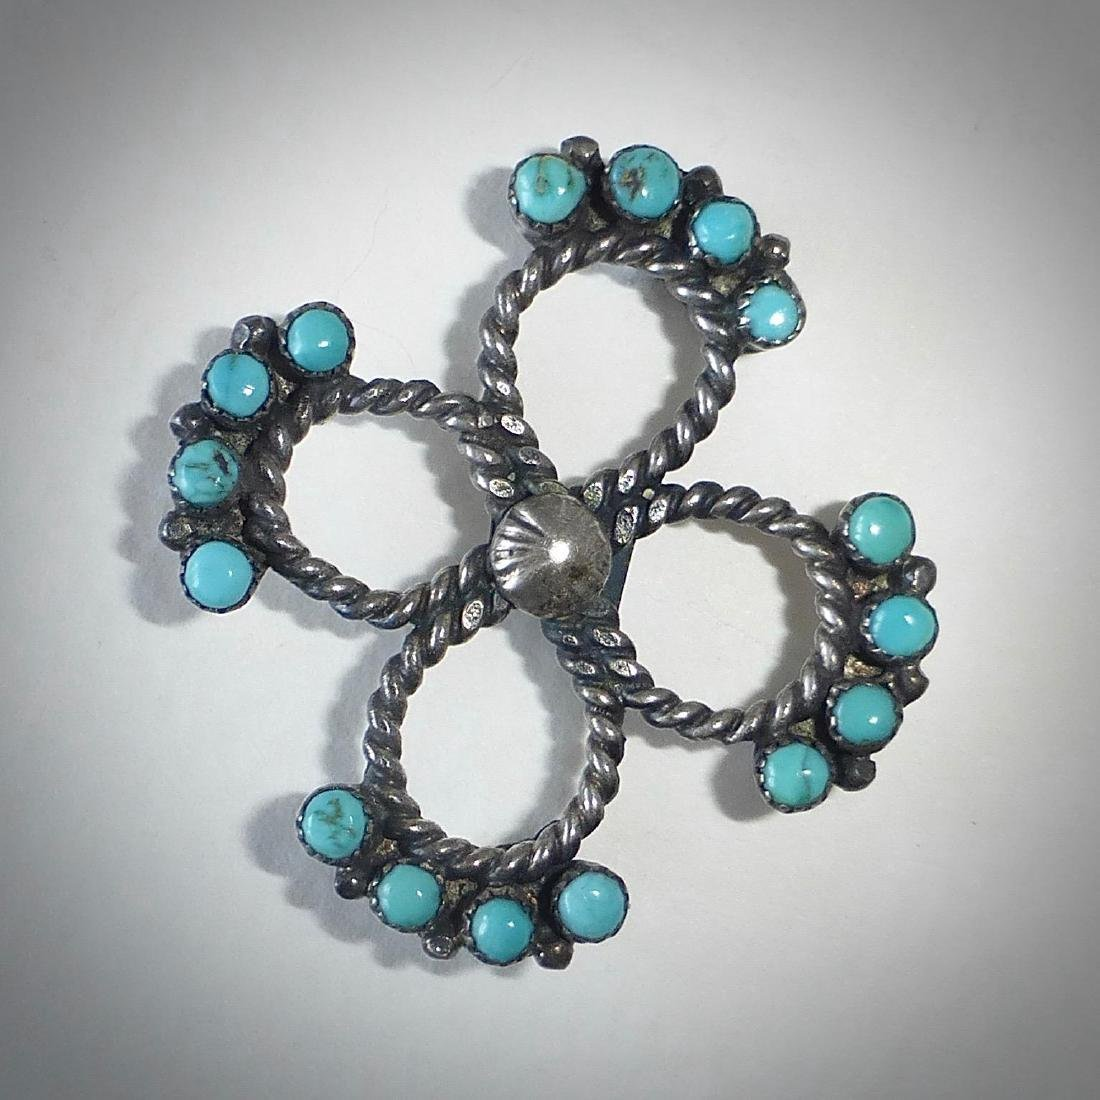 Native American Sterling Silver Turquoise Pin - 8